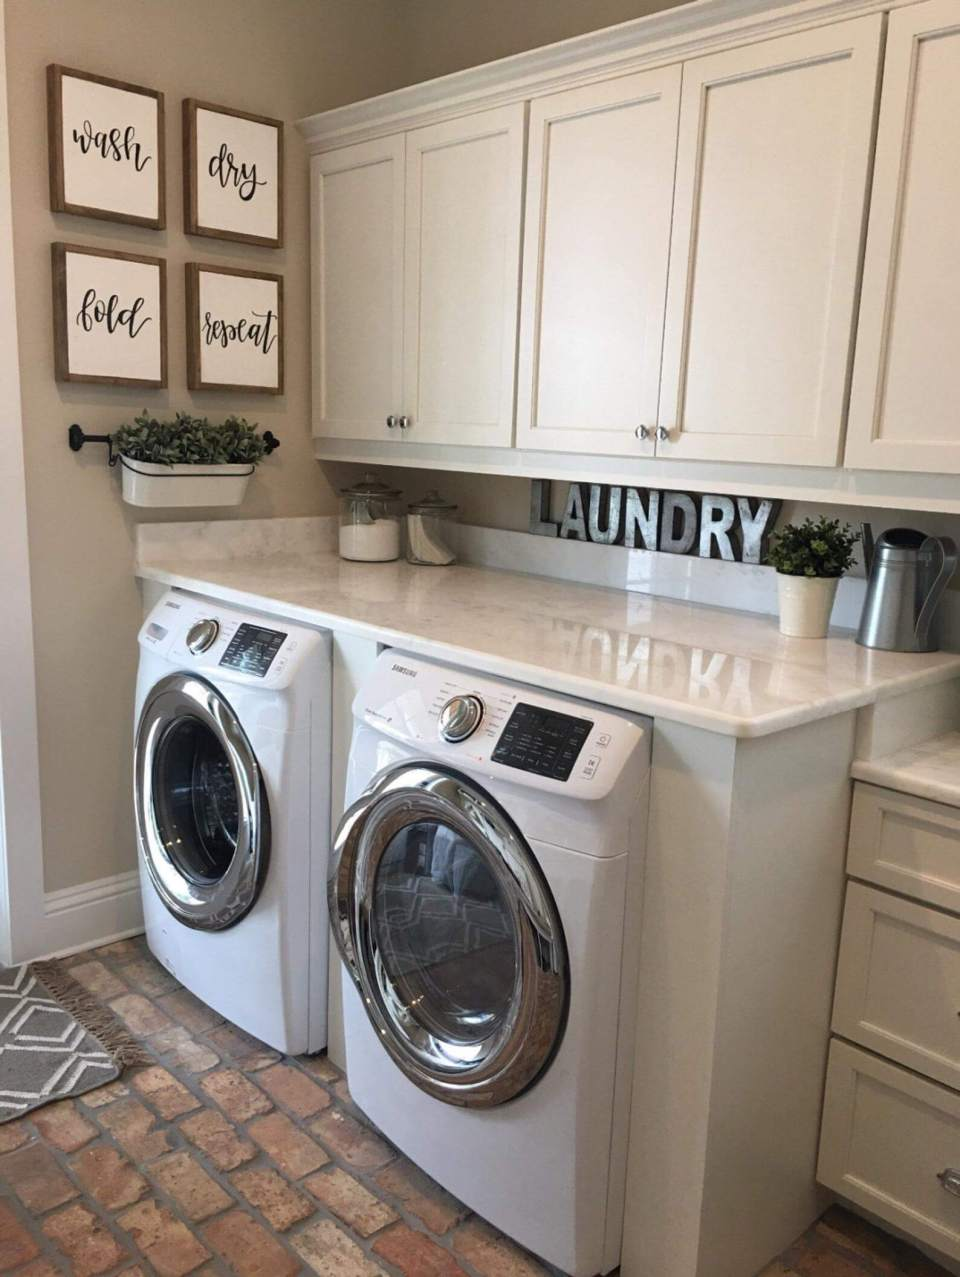 DIY Farmhouse Laundry Room Ideas: Wash Dry Fold Repeat Signs